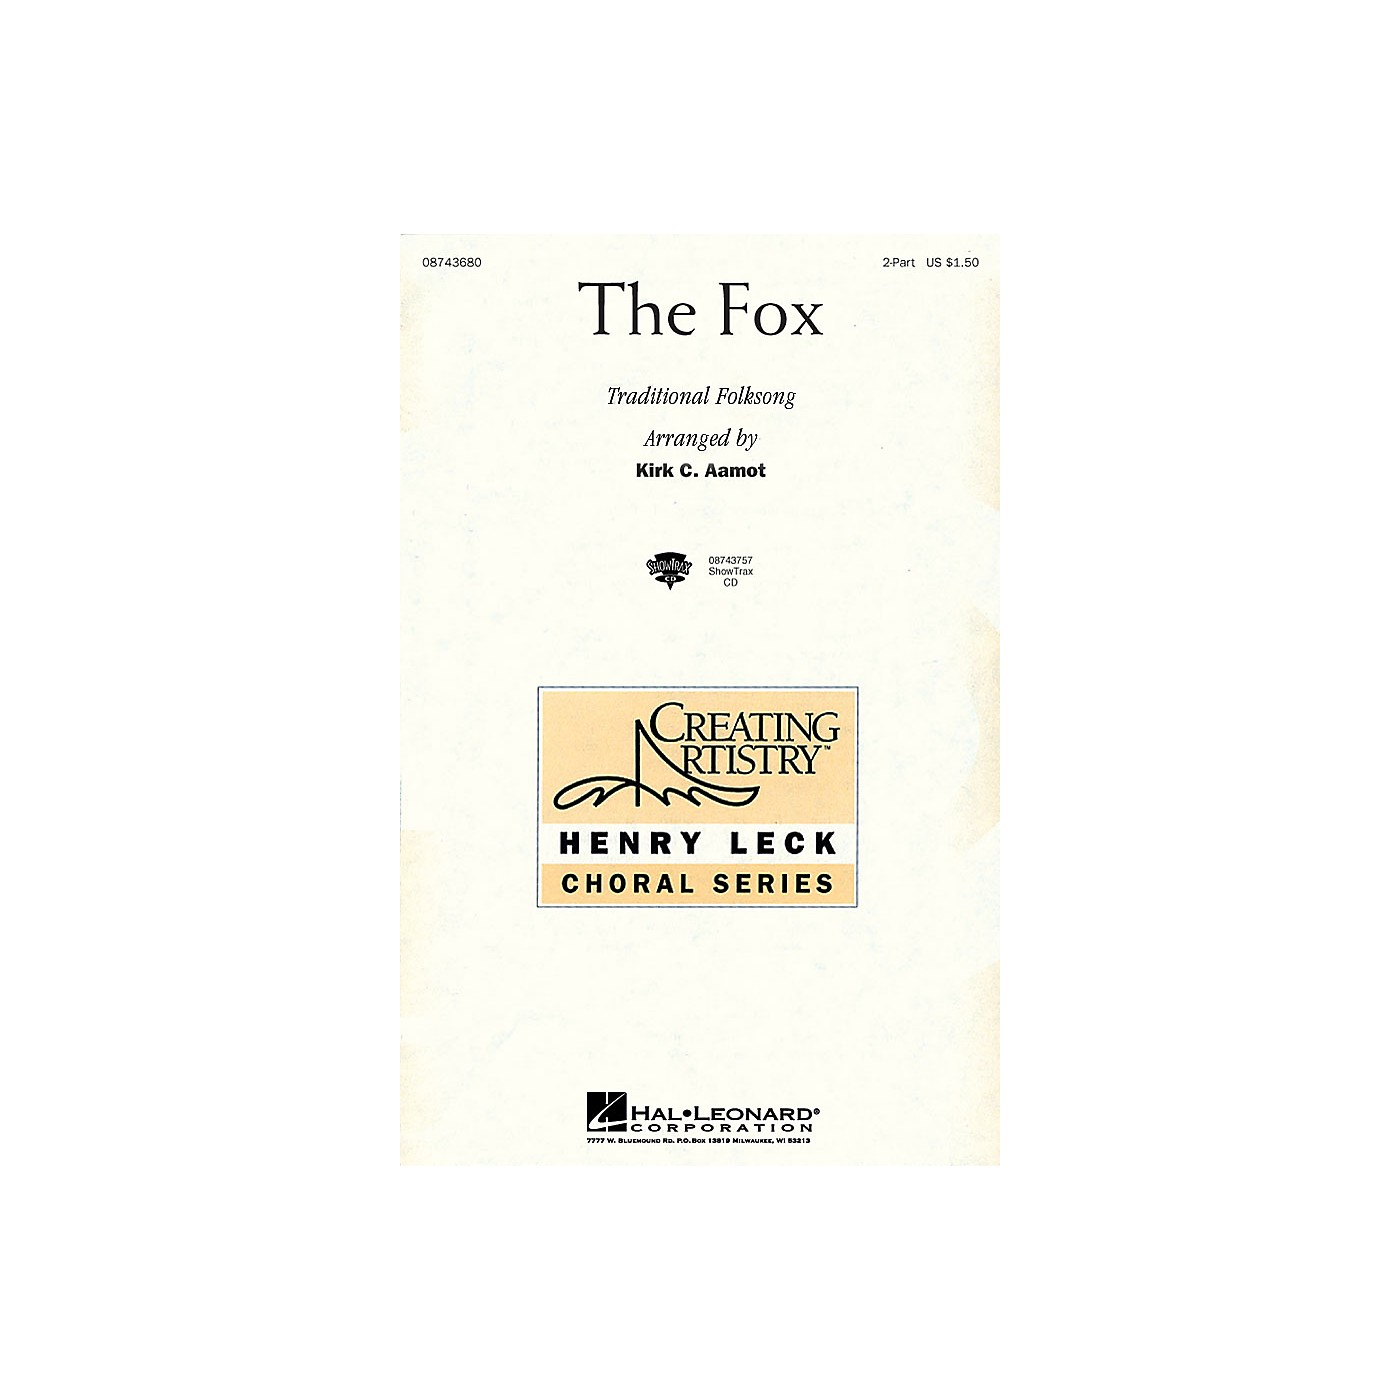 Hal Leonard The Fox ShowTrax CD Arranged by Kirk Aamot thumbnail